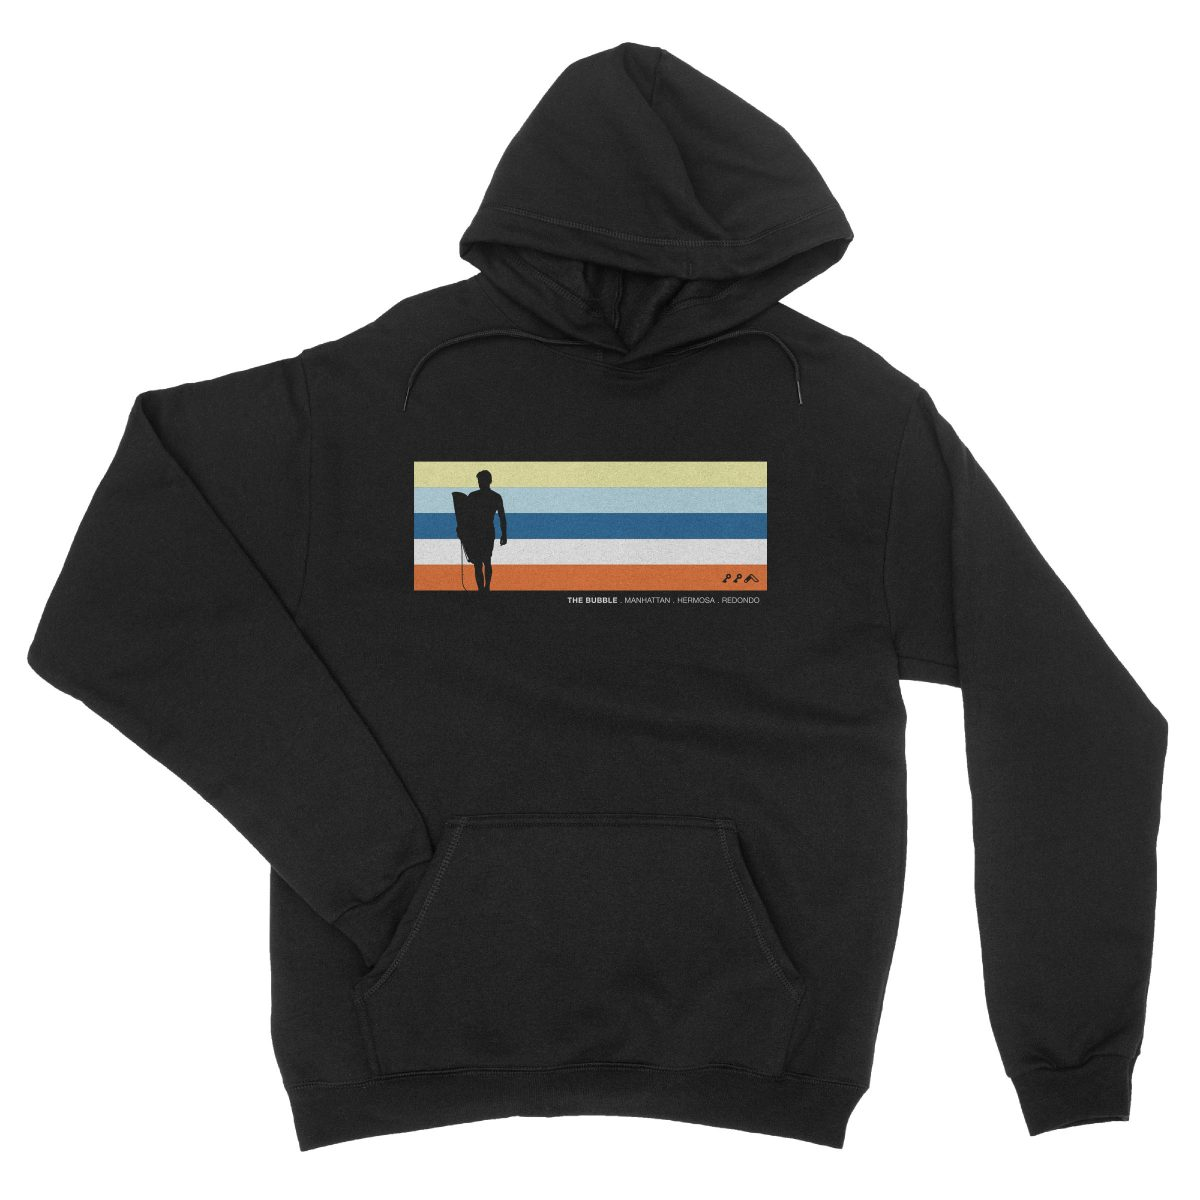 the bubble redondo hermosa manhattan beach hoodies in black by kikicutt sweatshirt store